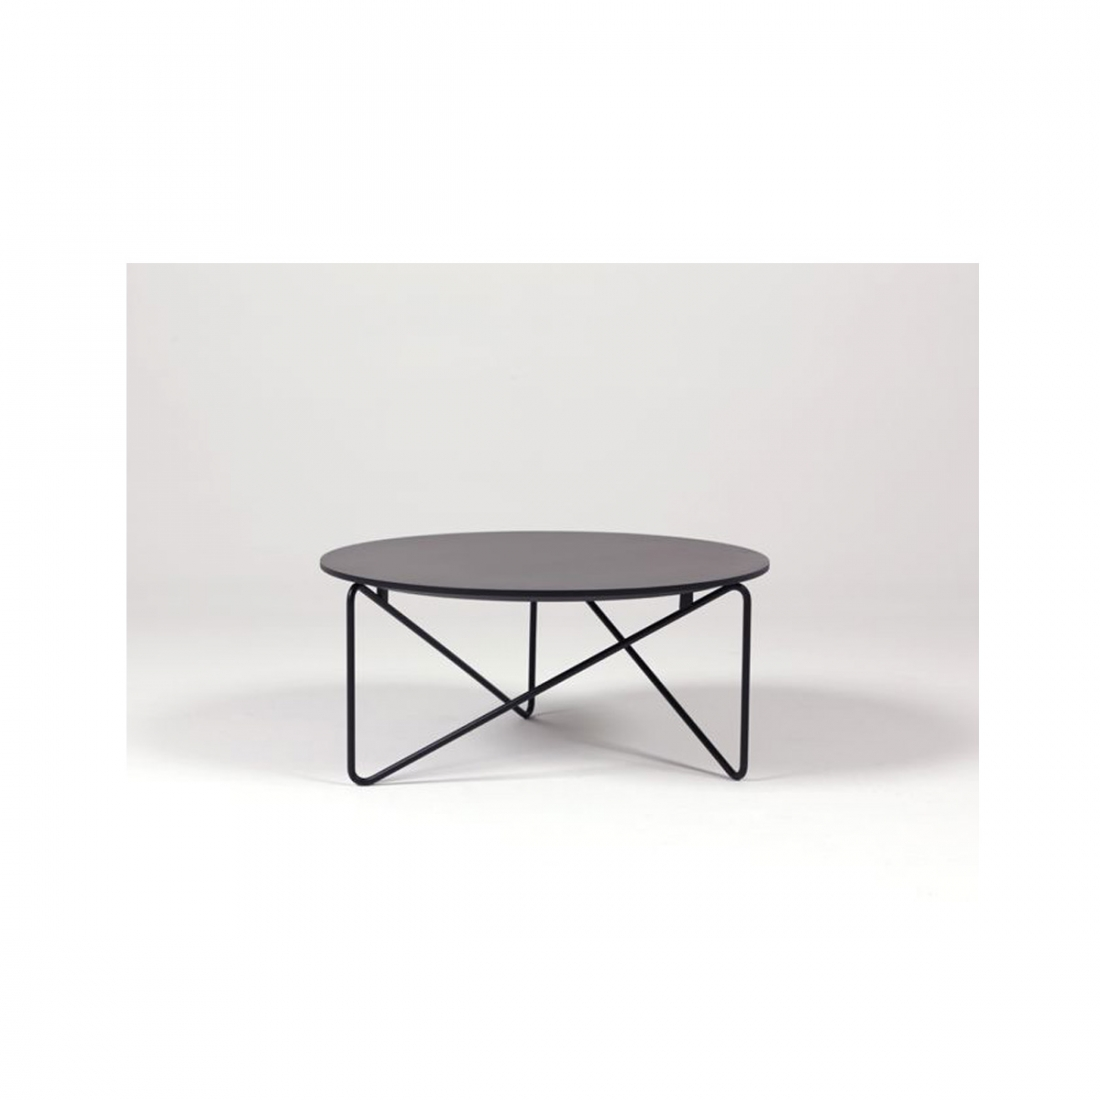 table basse ronde polygon prostoria zendart design. Black Bedroom Furniture Sets. Home Design Ideas